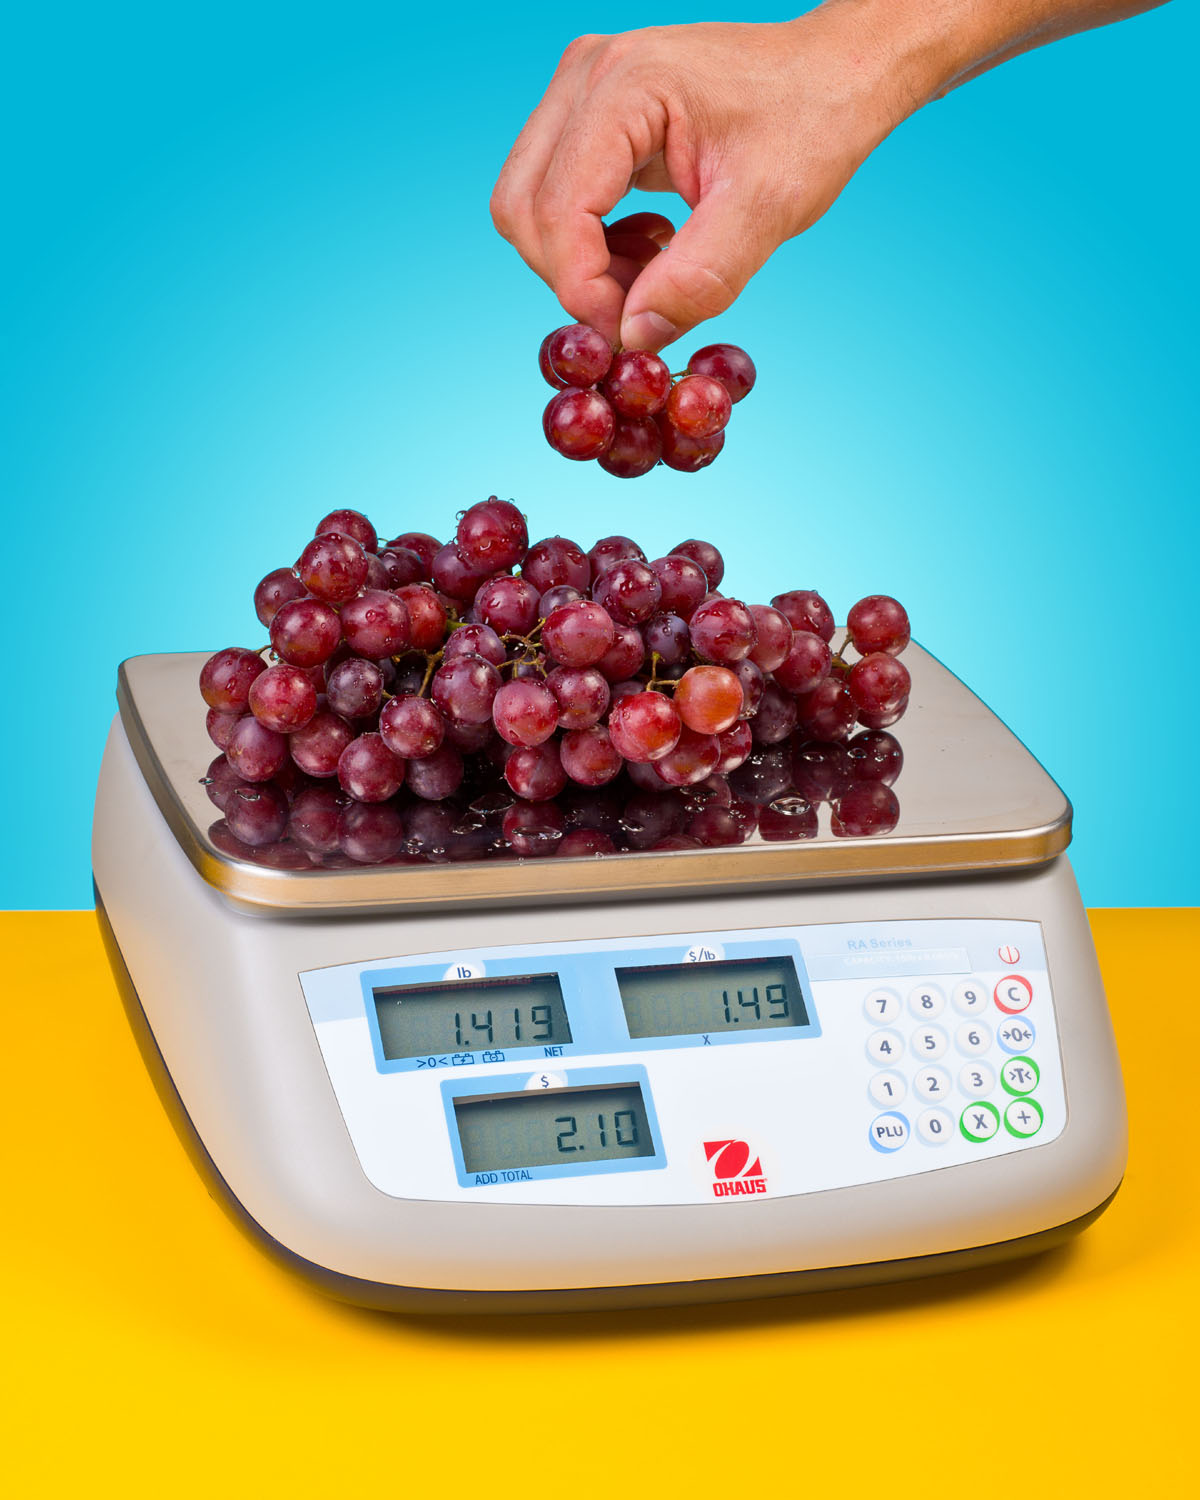 PORTABLE RETAIL SCALE LEGAL FOR TRADE, EASY TO USE & CLEAN